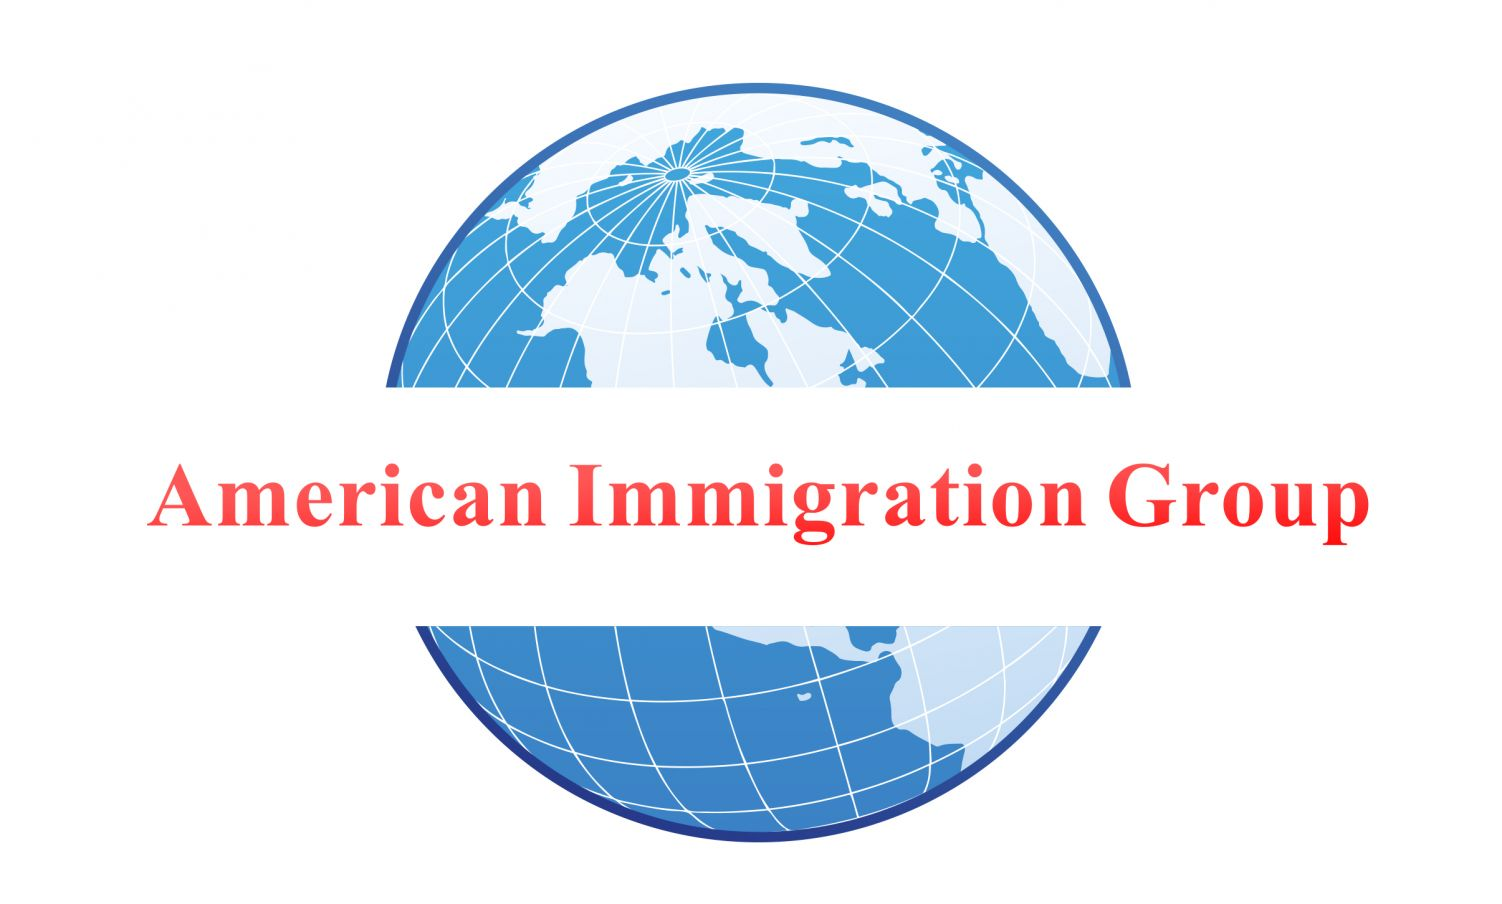 American Immigration Group Logo